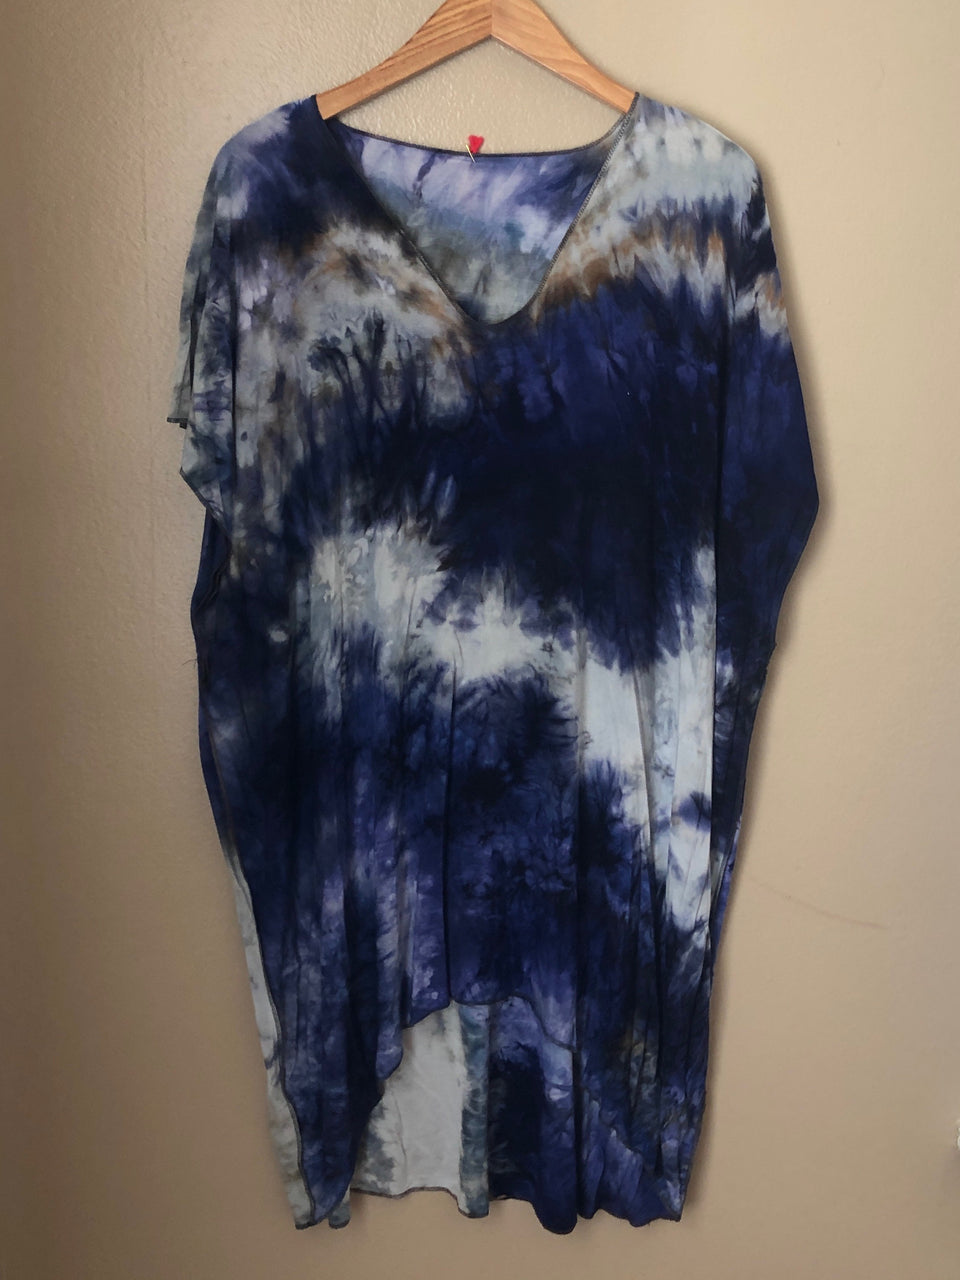 HAND DYED ONE-OF-A- KIND TUNIC